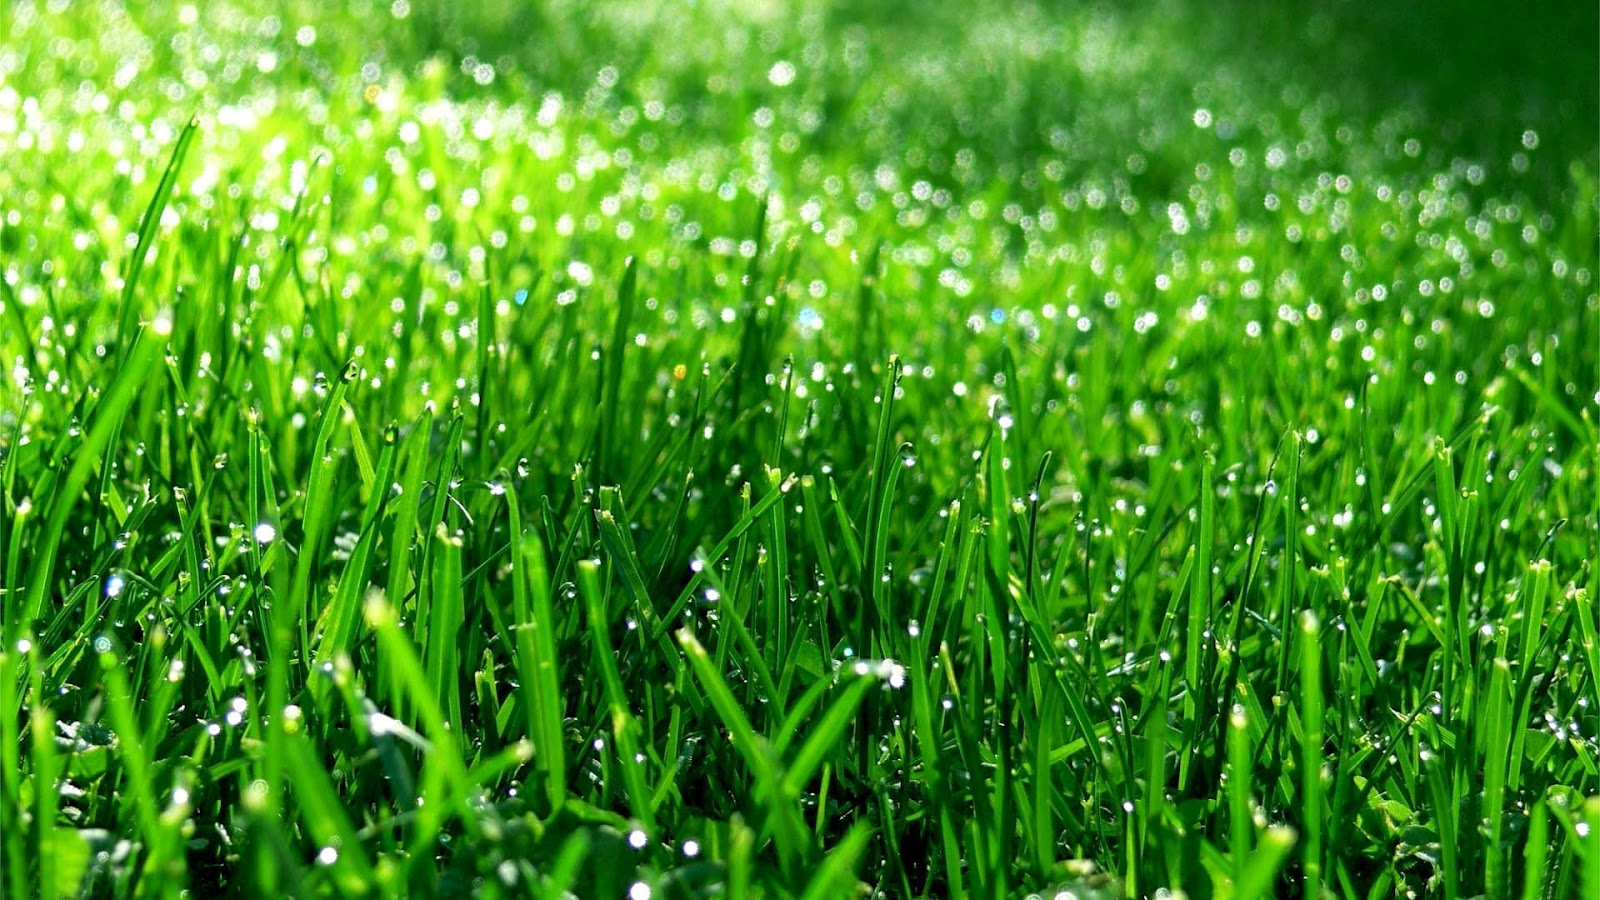 Grass Wallpapers Hd Archives  Page 2 Of 8 HD Desktop